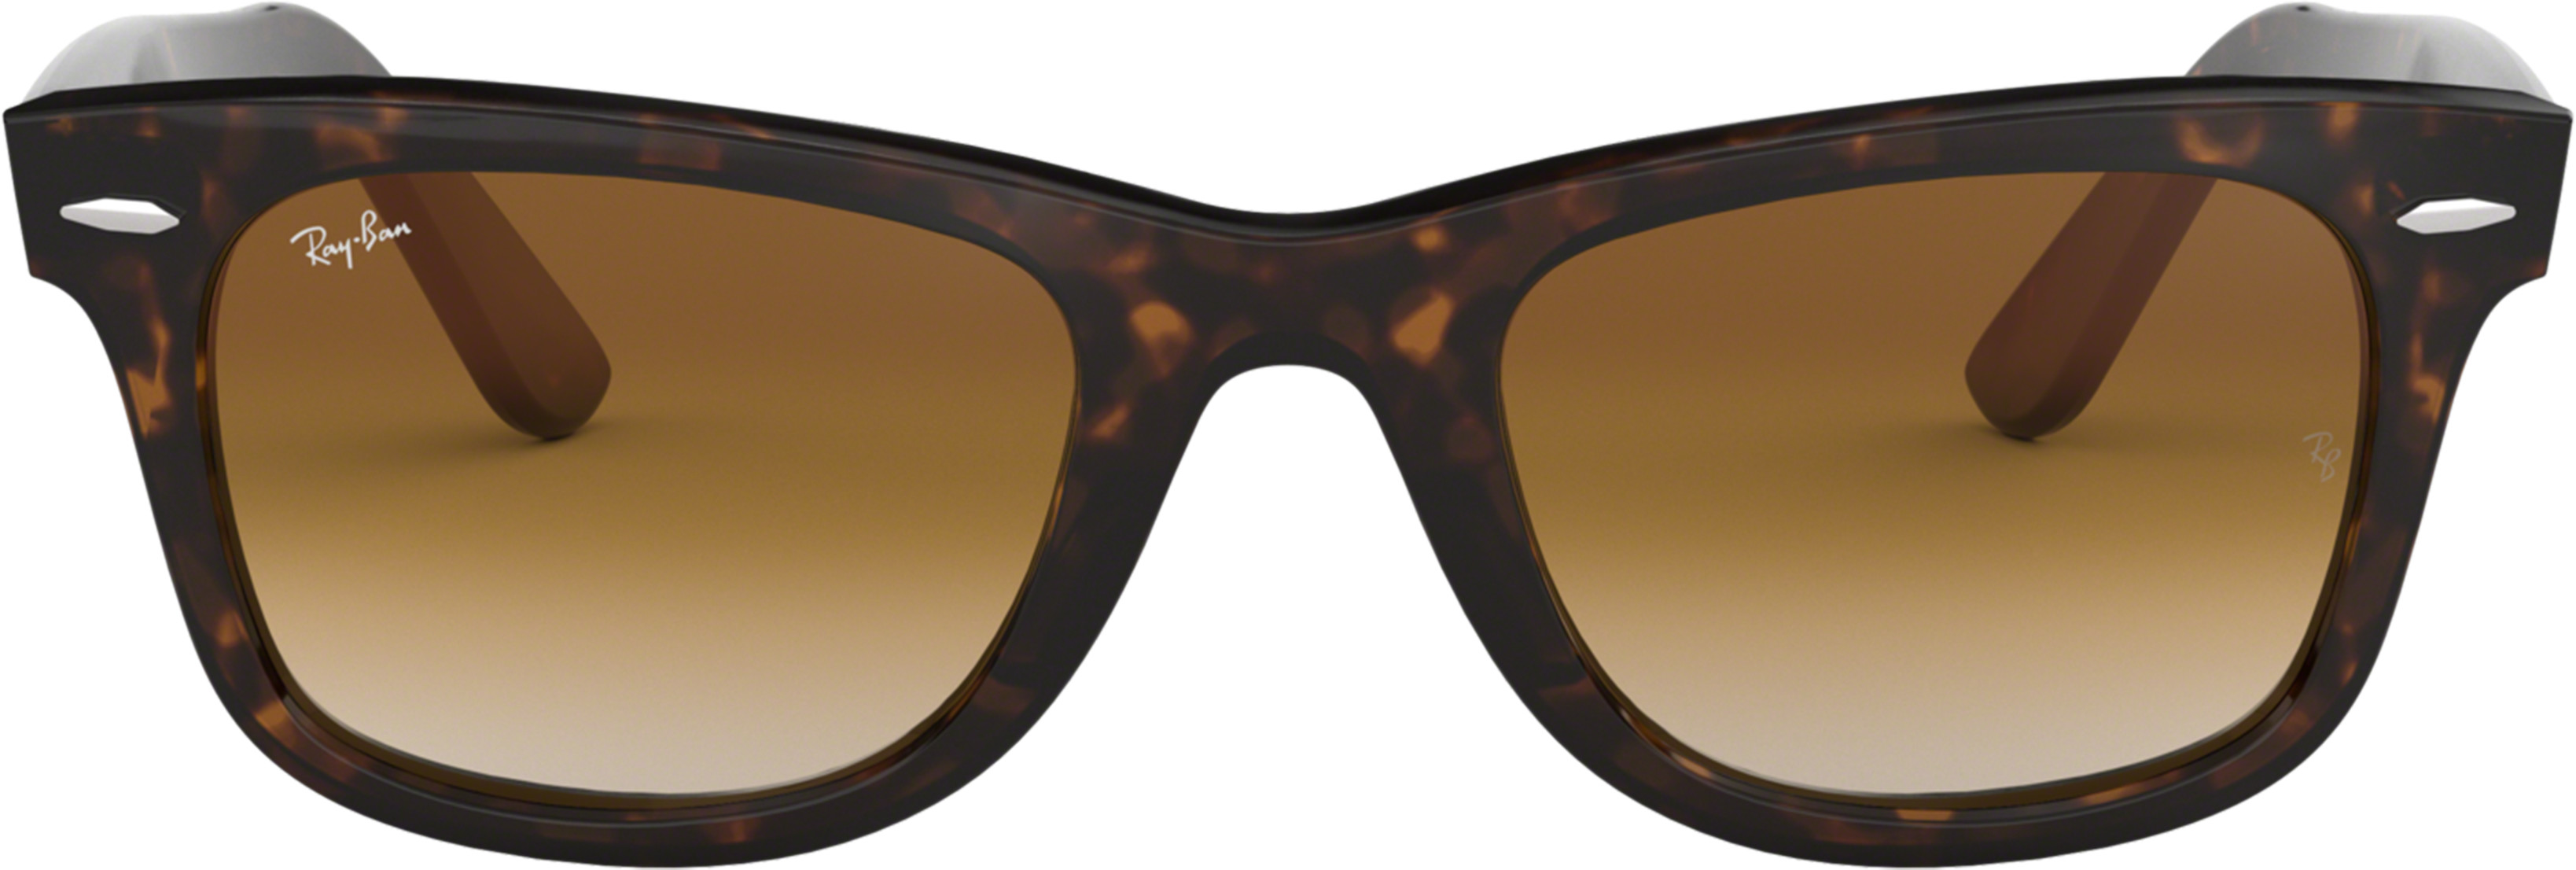 805289183082_front_rayban